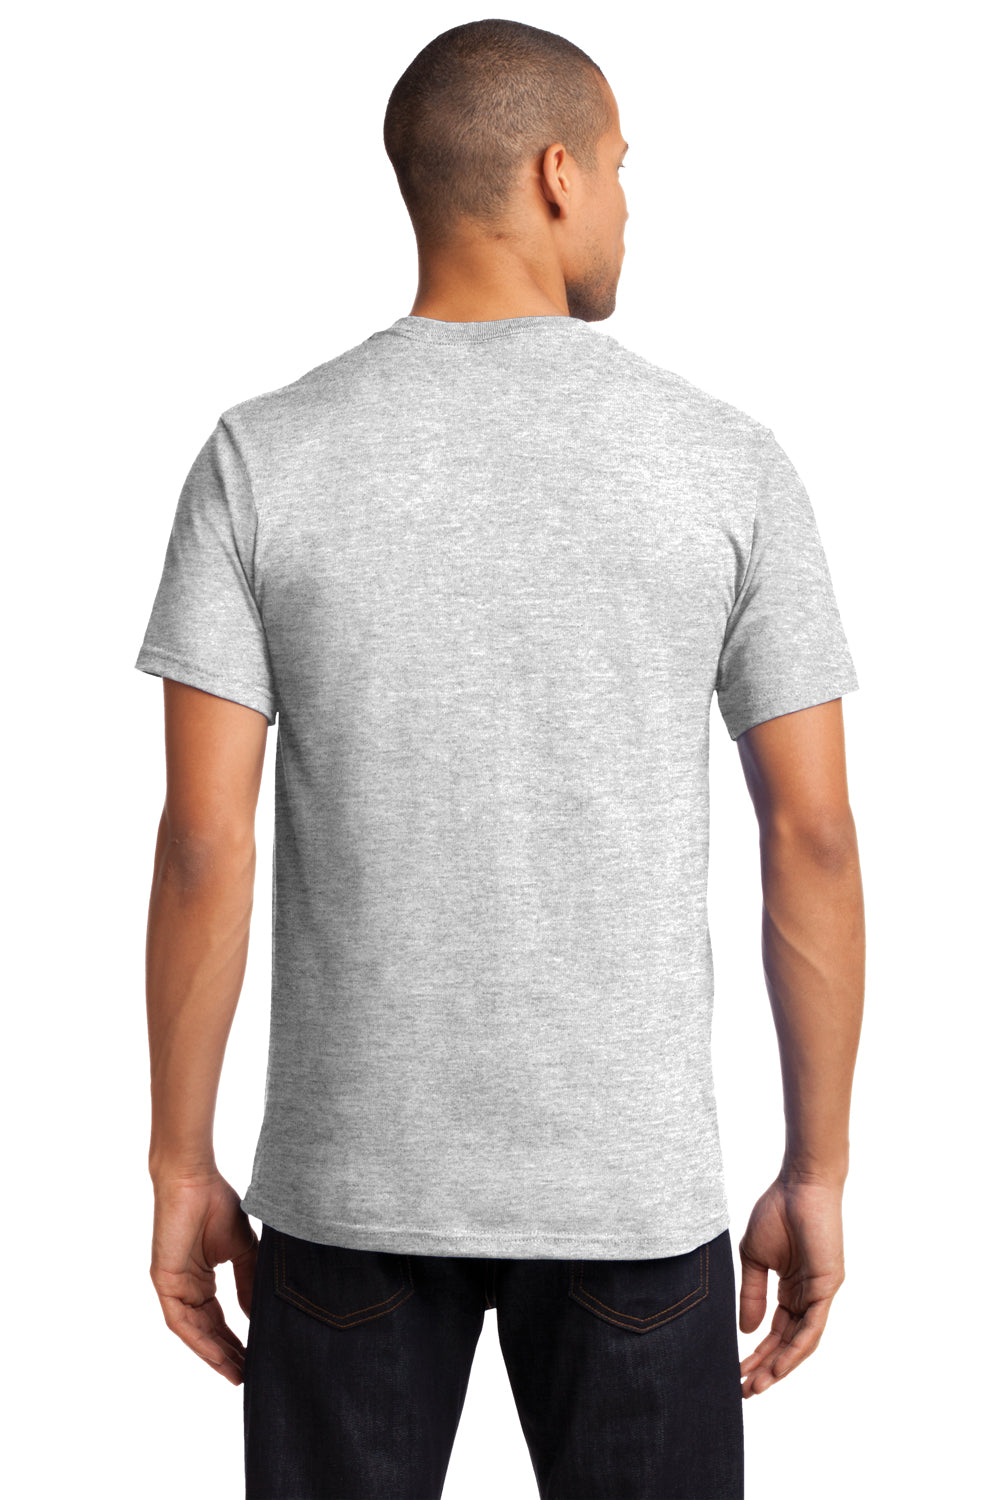 Port & Company PC61P Mens Essential Short Sleeve Crewneck T-Shirt w/ Pocket Ash Grey Back